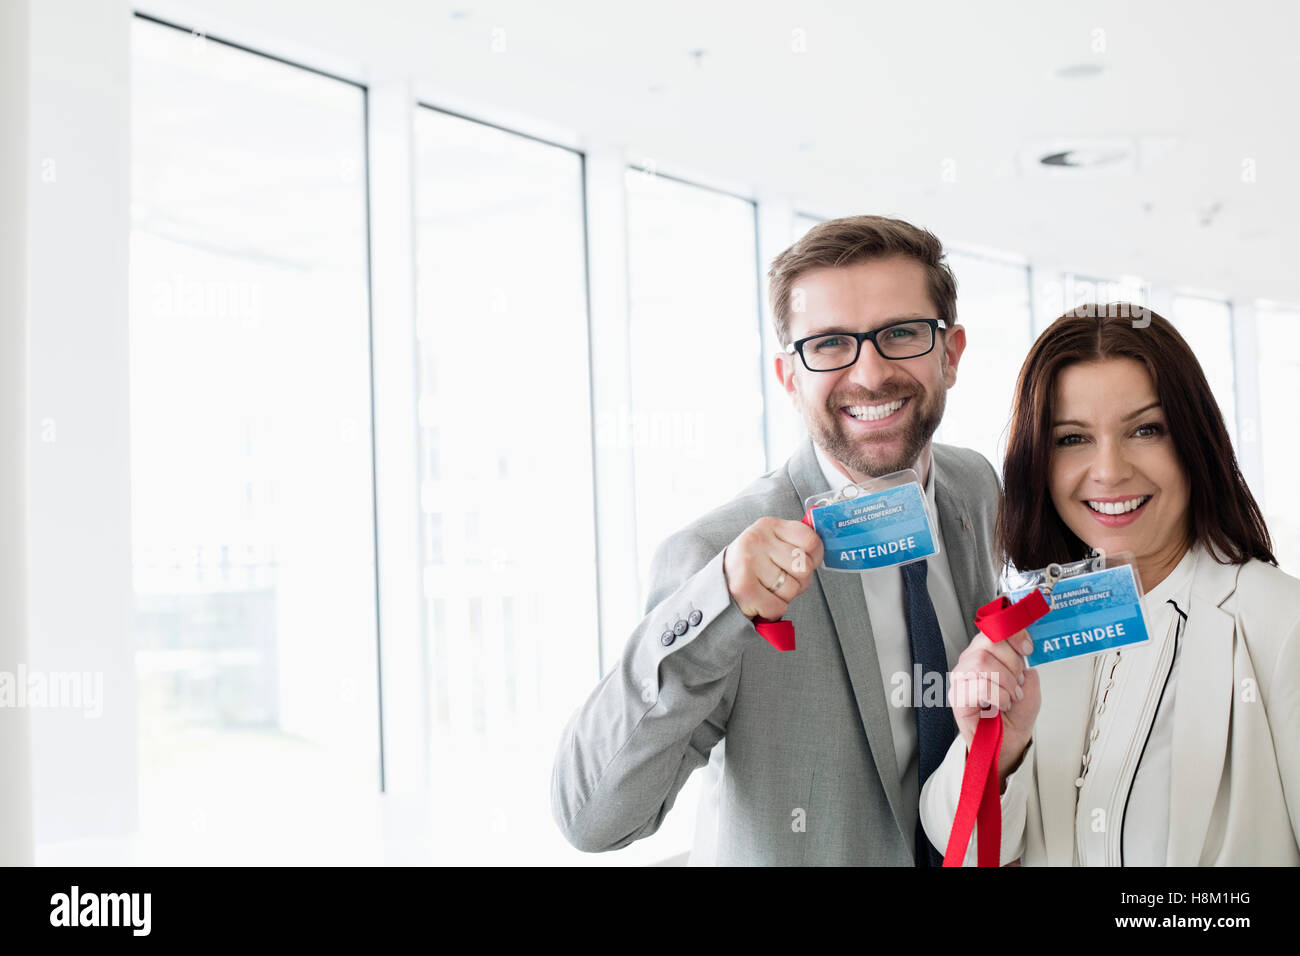 Portrait of happy business people showing identity cards in convention center - Stock Image